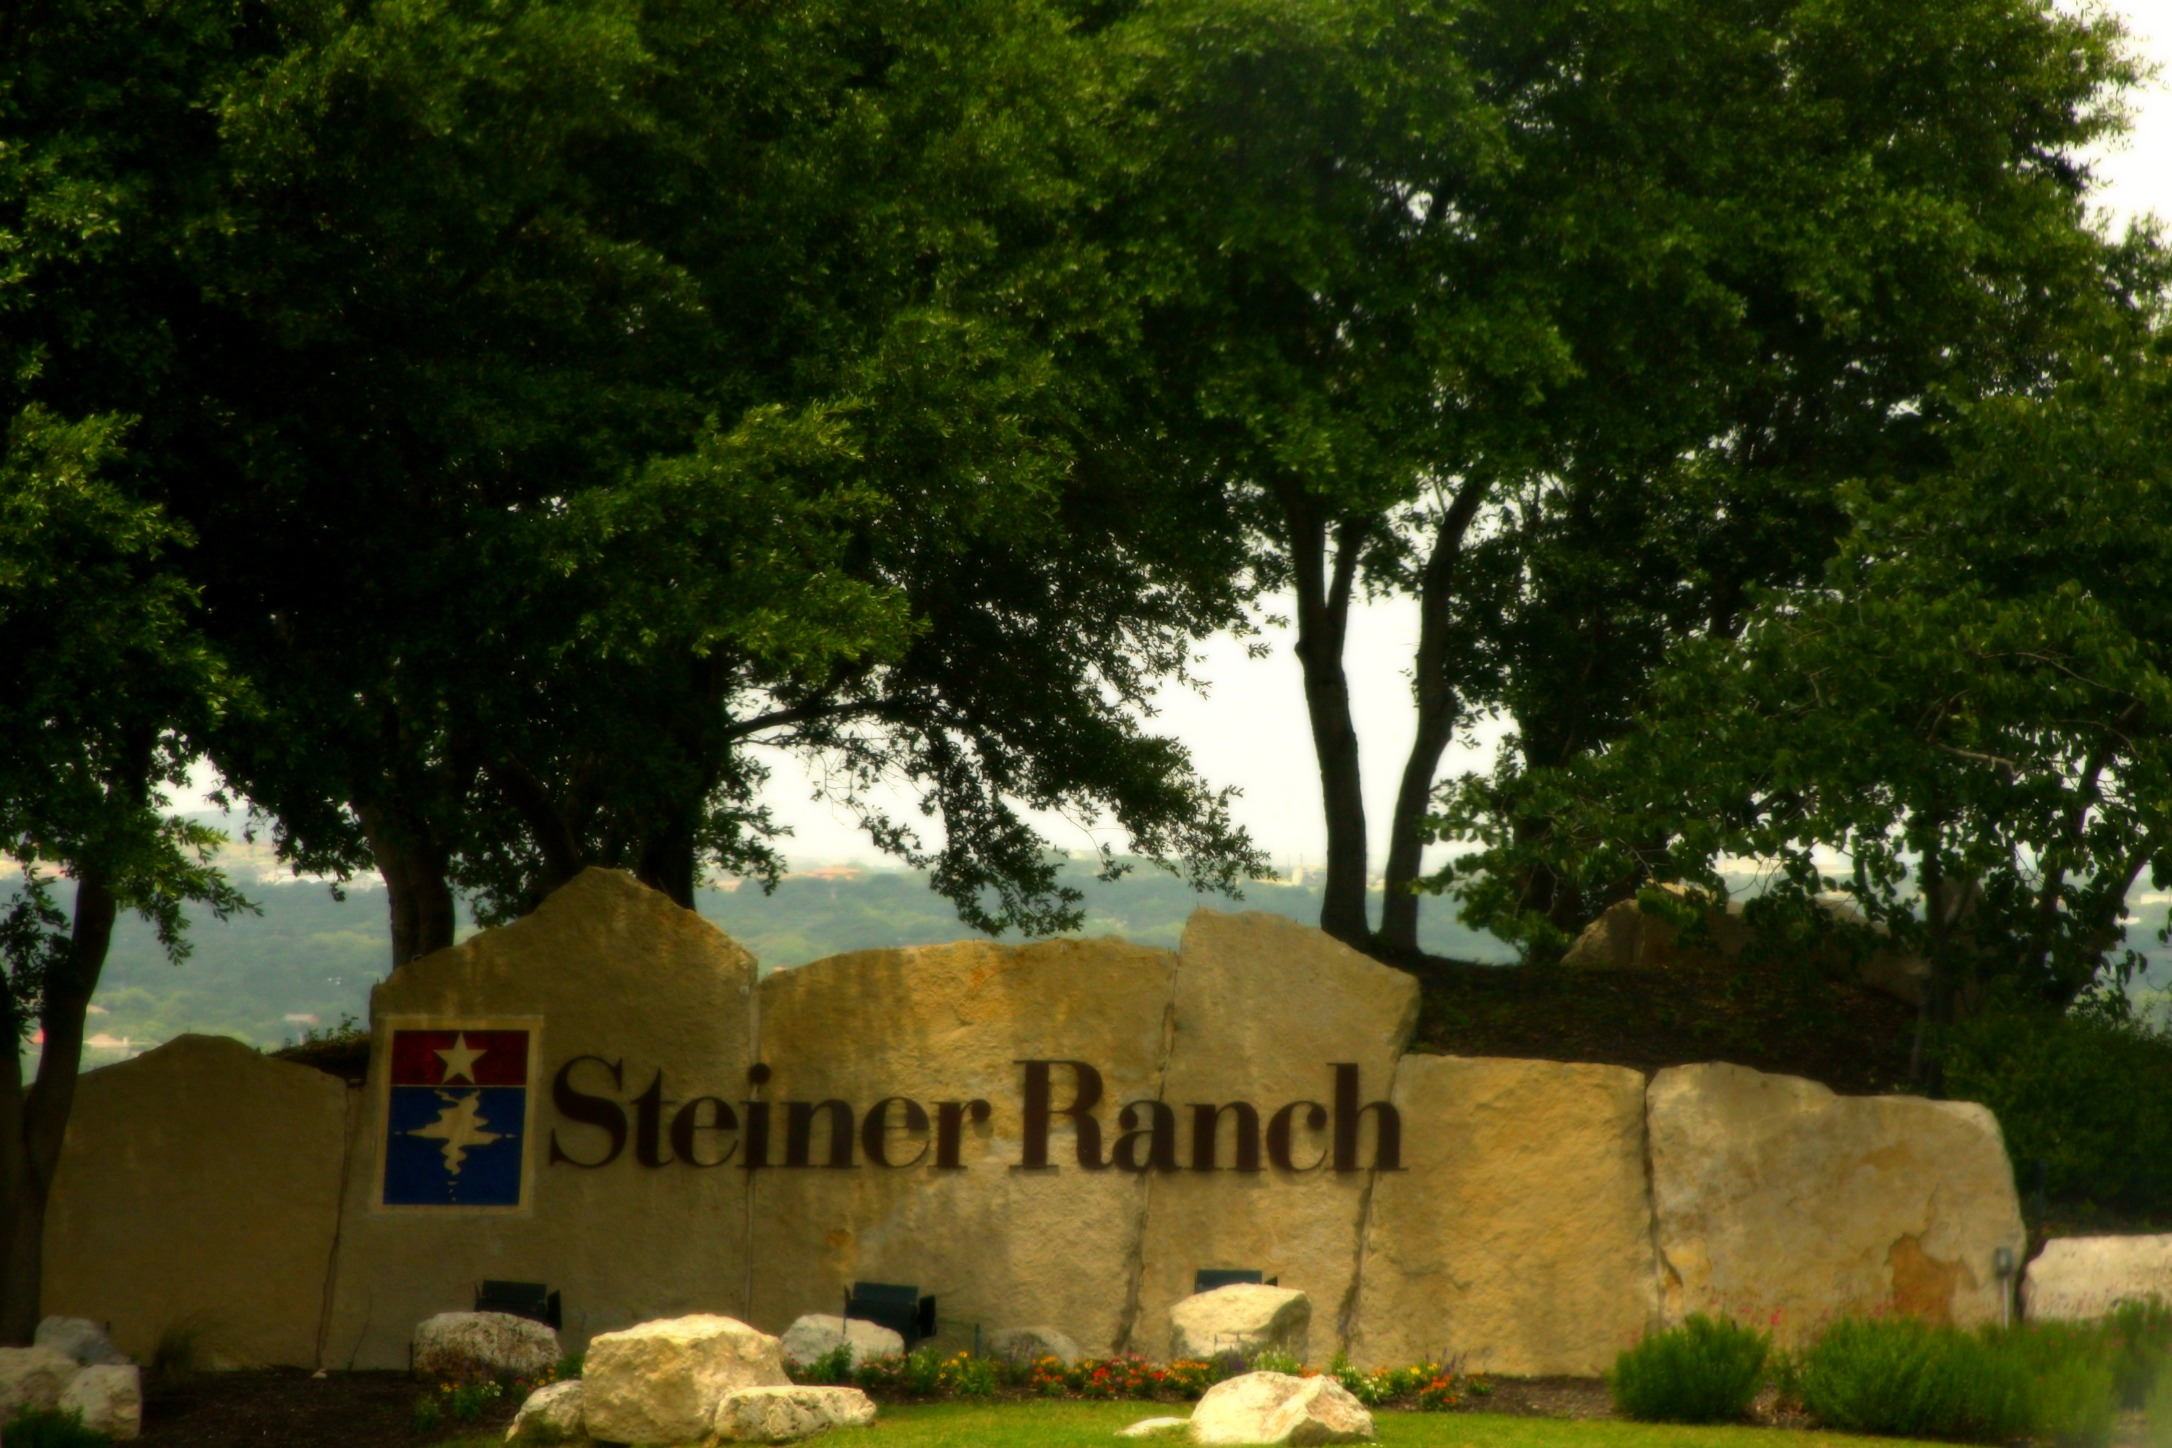 Homes for Sale Steiner Ranch, Gene Arant Team, Austin Texas Real Estate